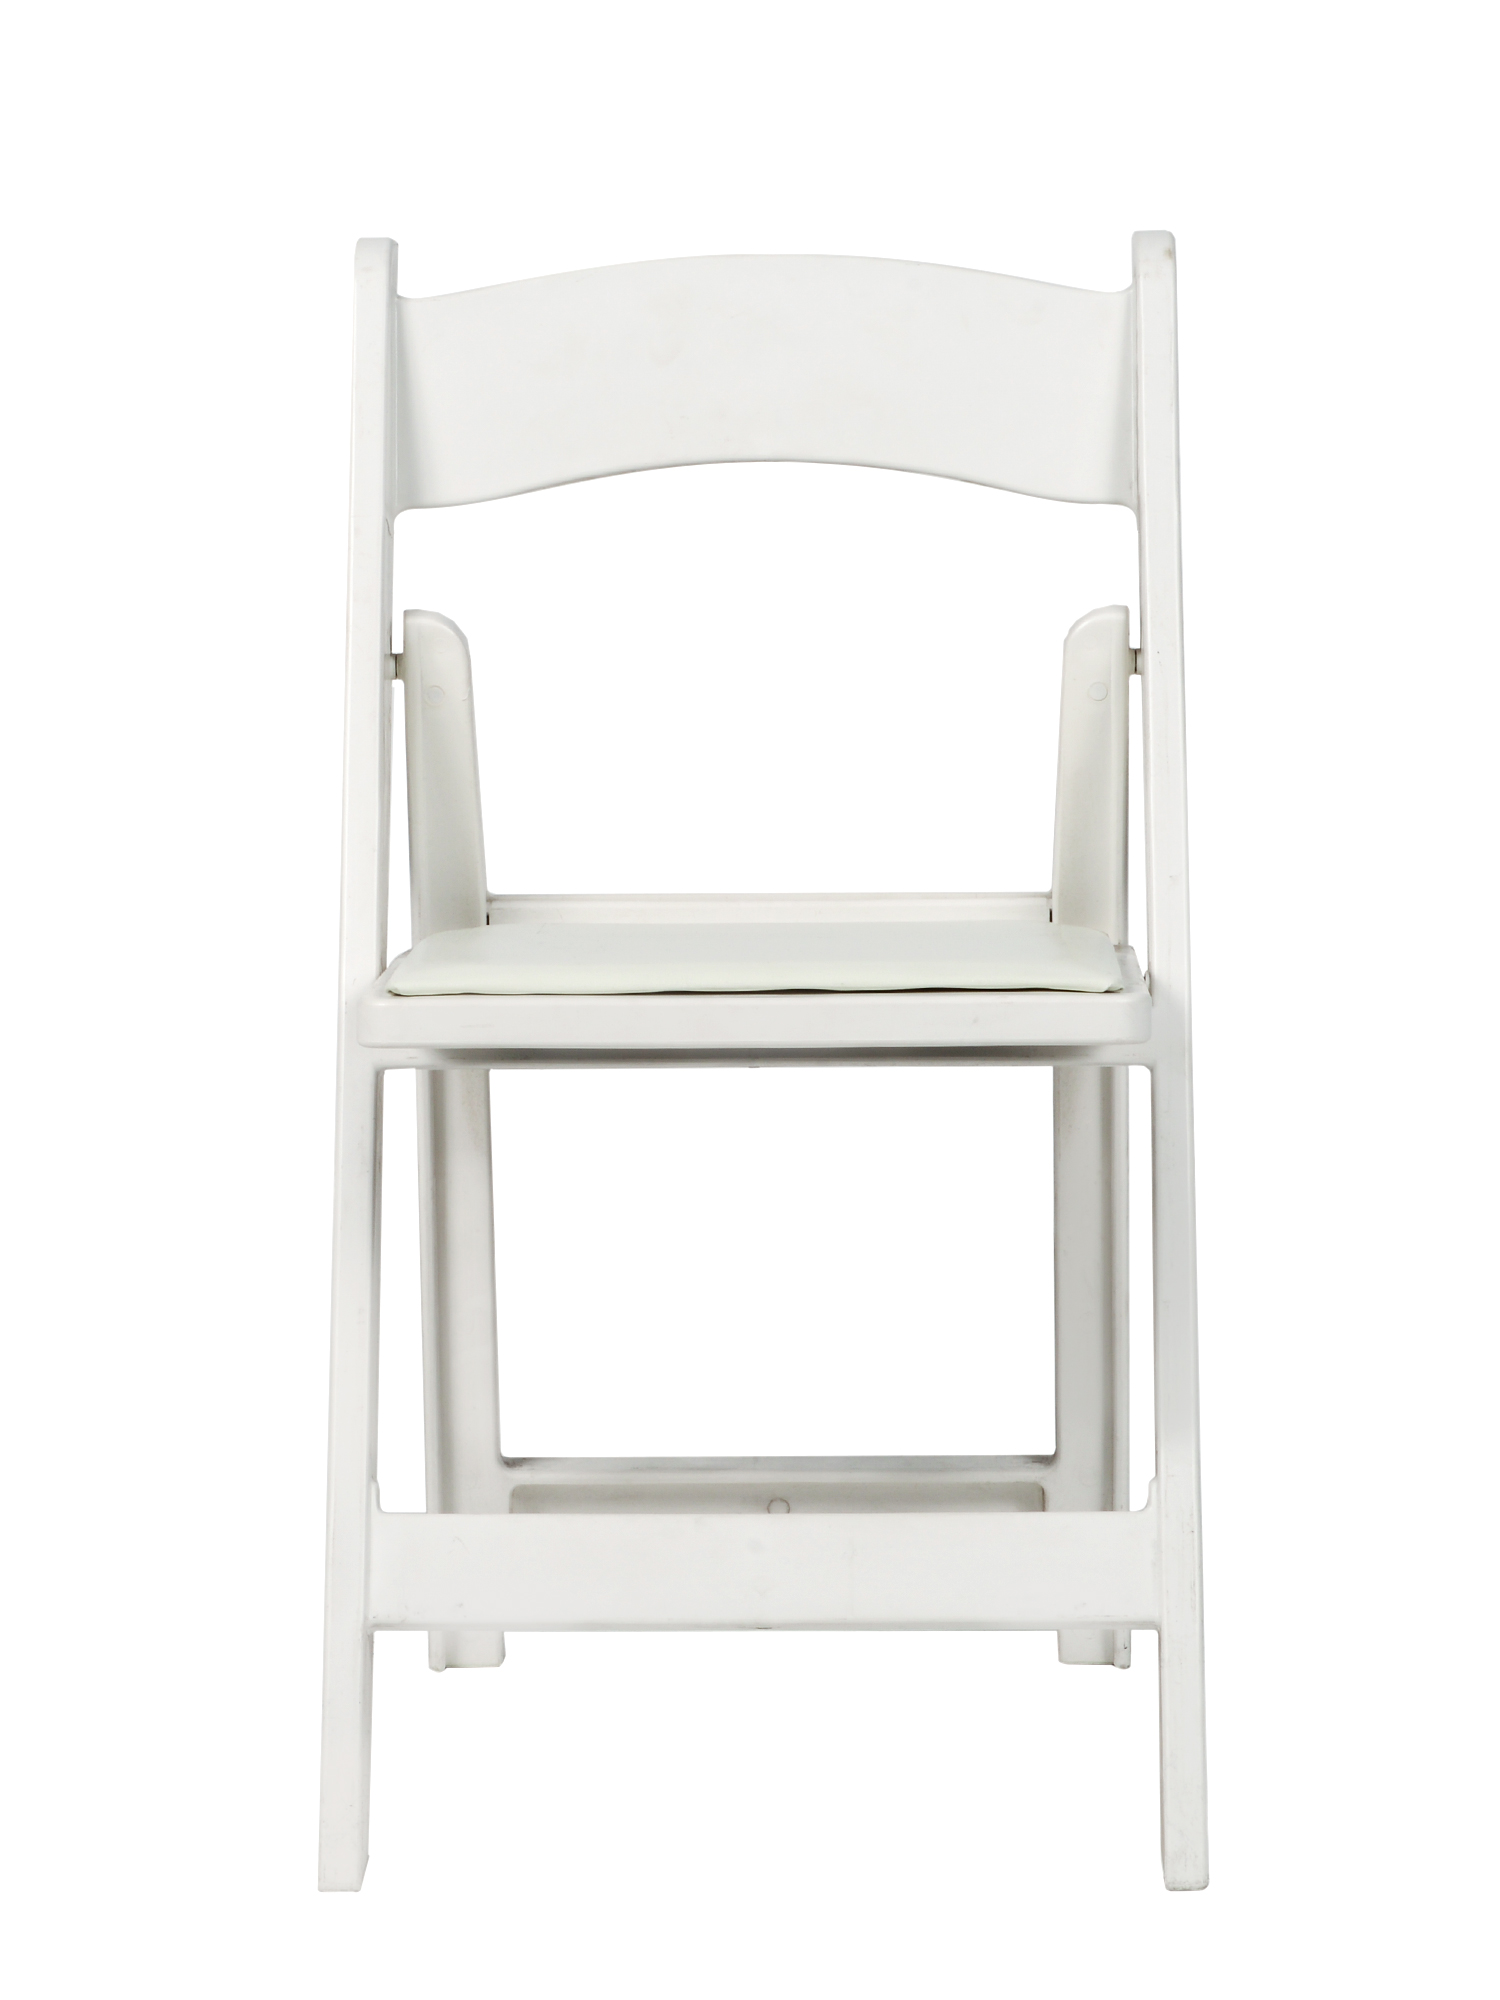 folding chair vinyl padded black best computer for long hours max resin with seat  csp